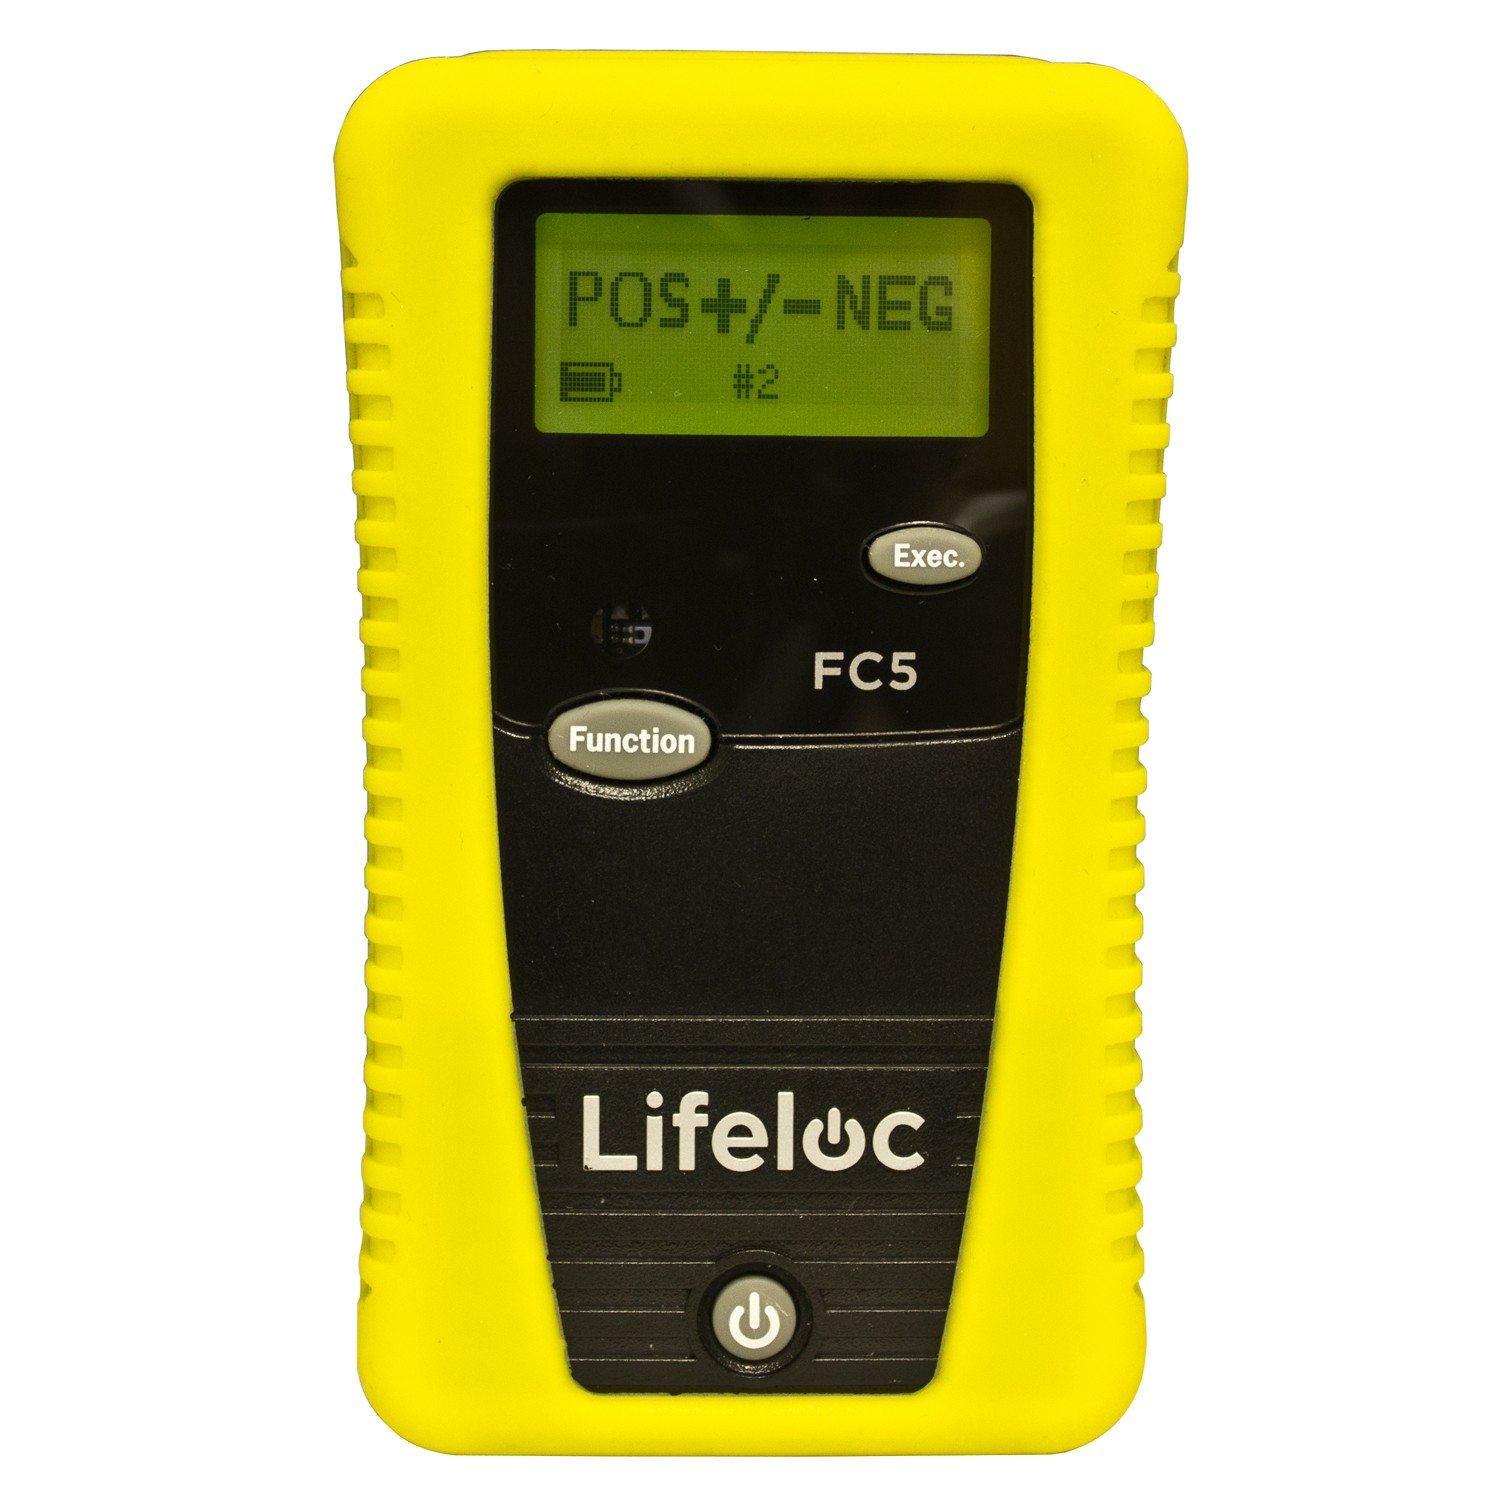 Lifeloc FC5 Hornet DOT-Approved Evidential Breathalyzer (Passive Testing)